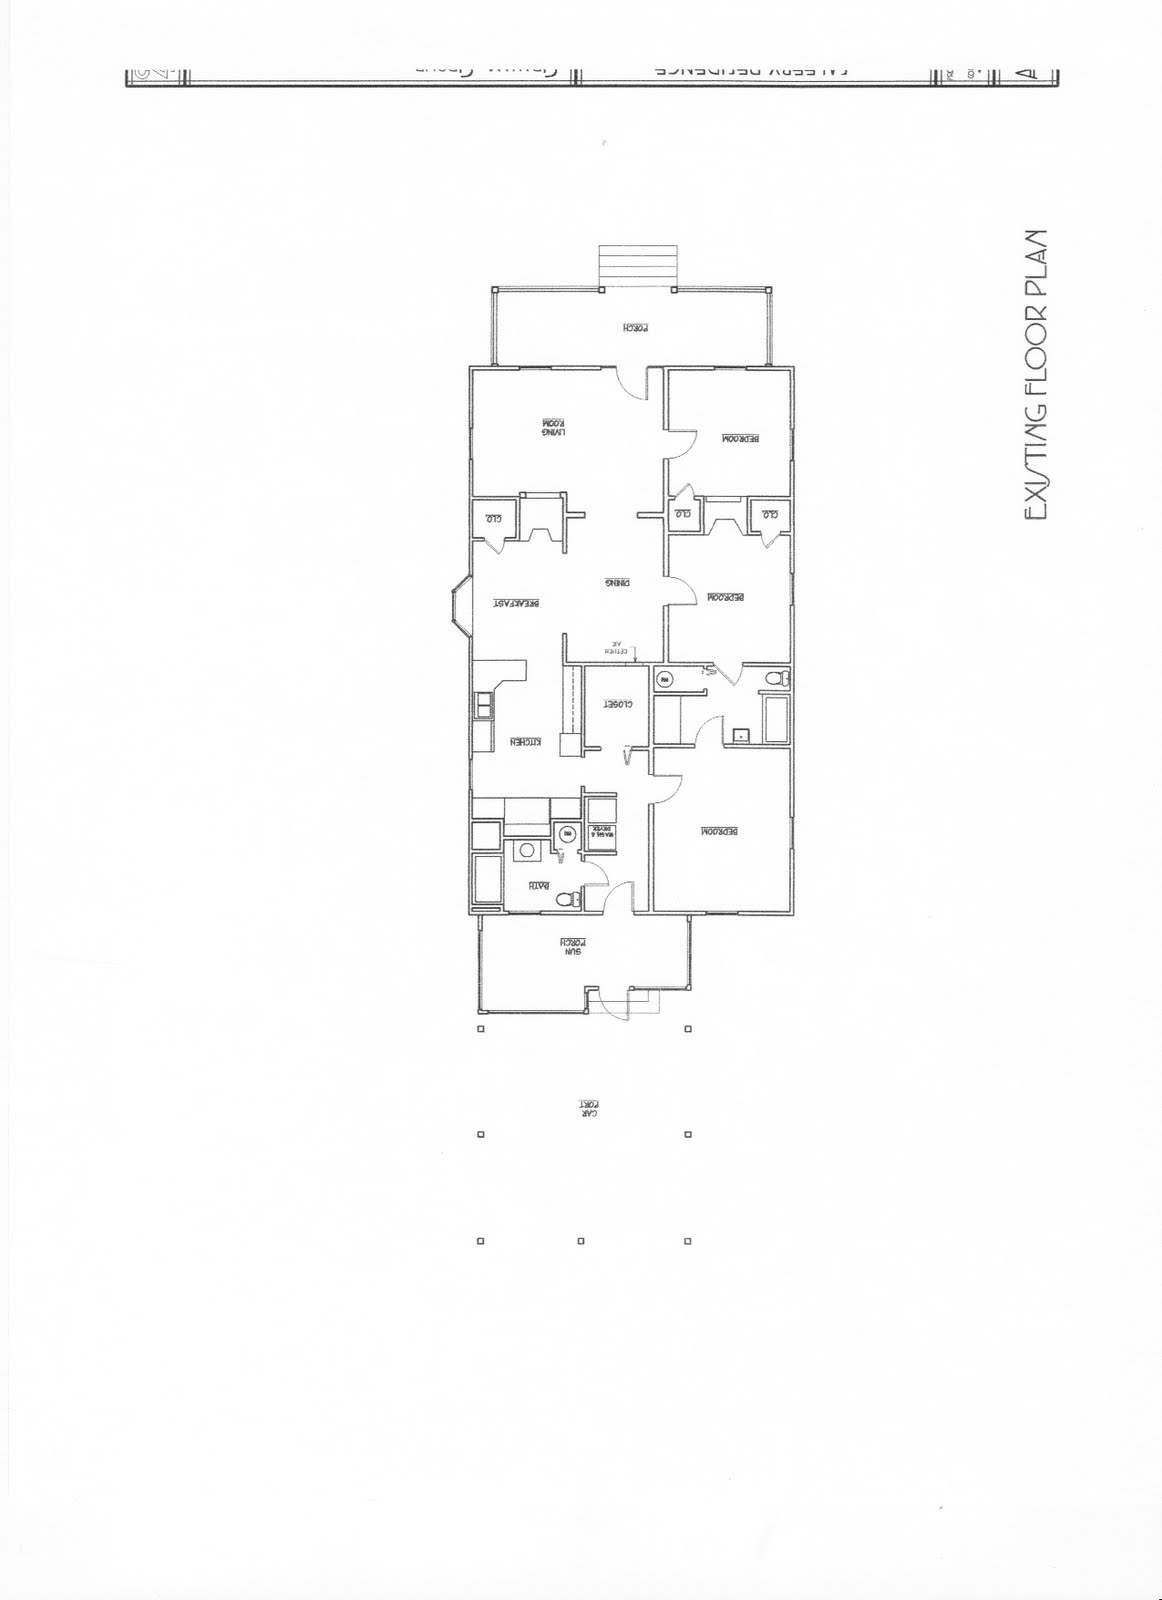 Our old house existing floor plan for Floor plans for existing homes